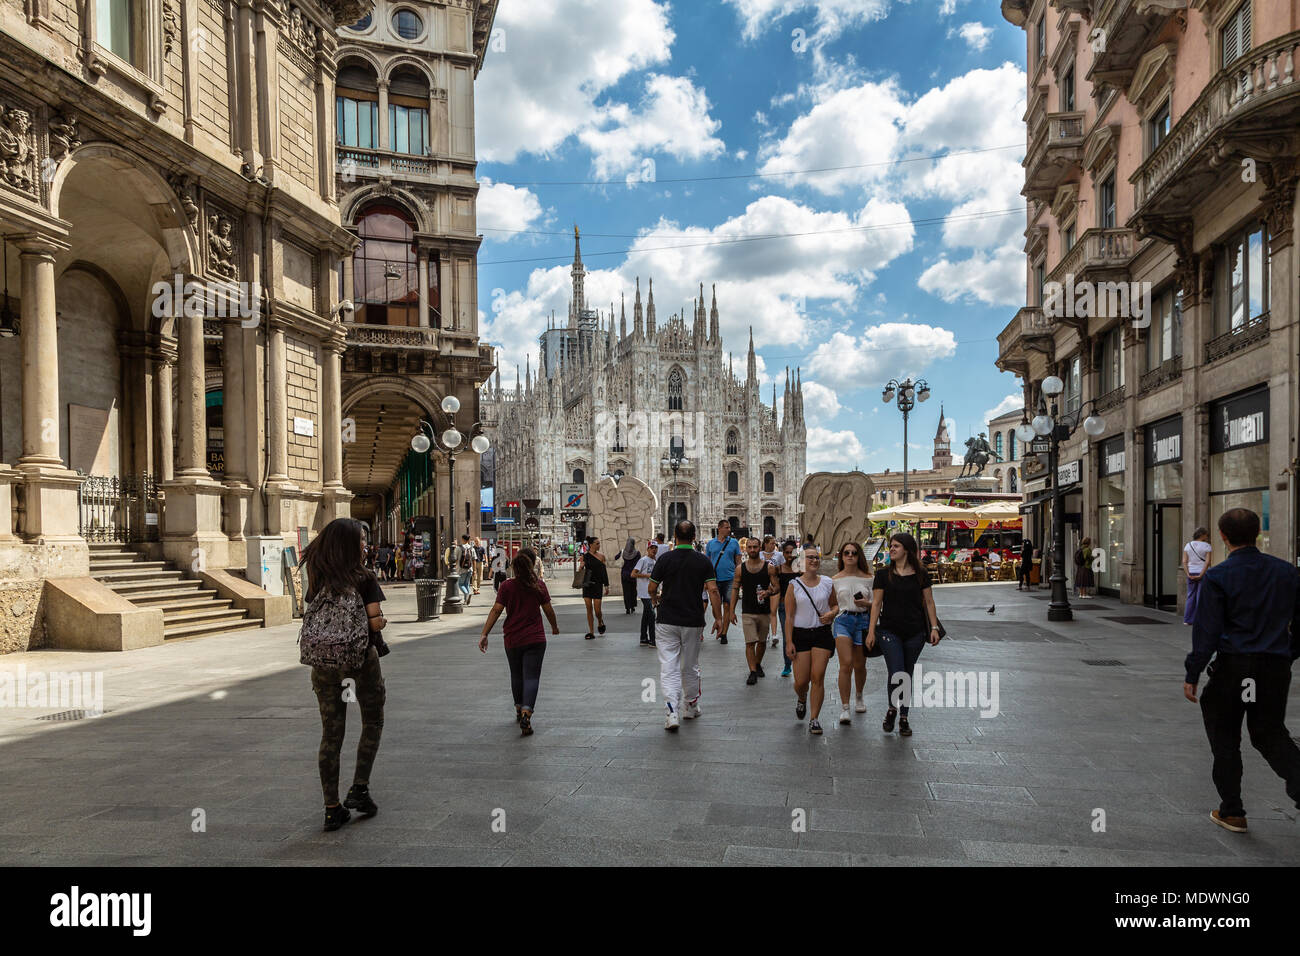 Milano, Italy, Piazza dei Mercanti Stock Photo